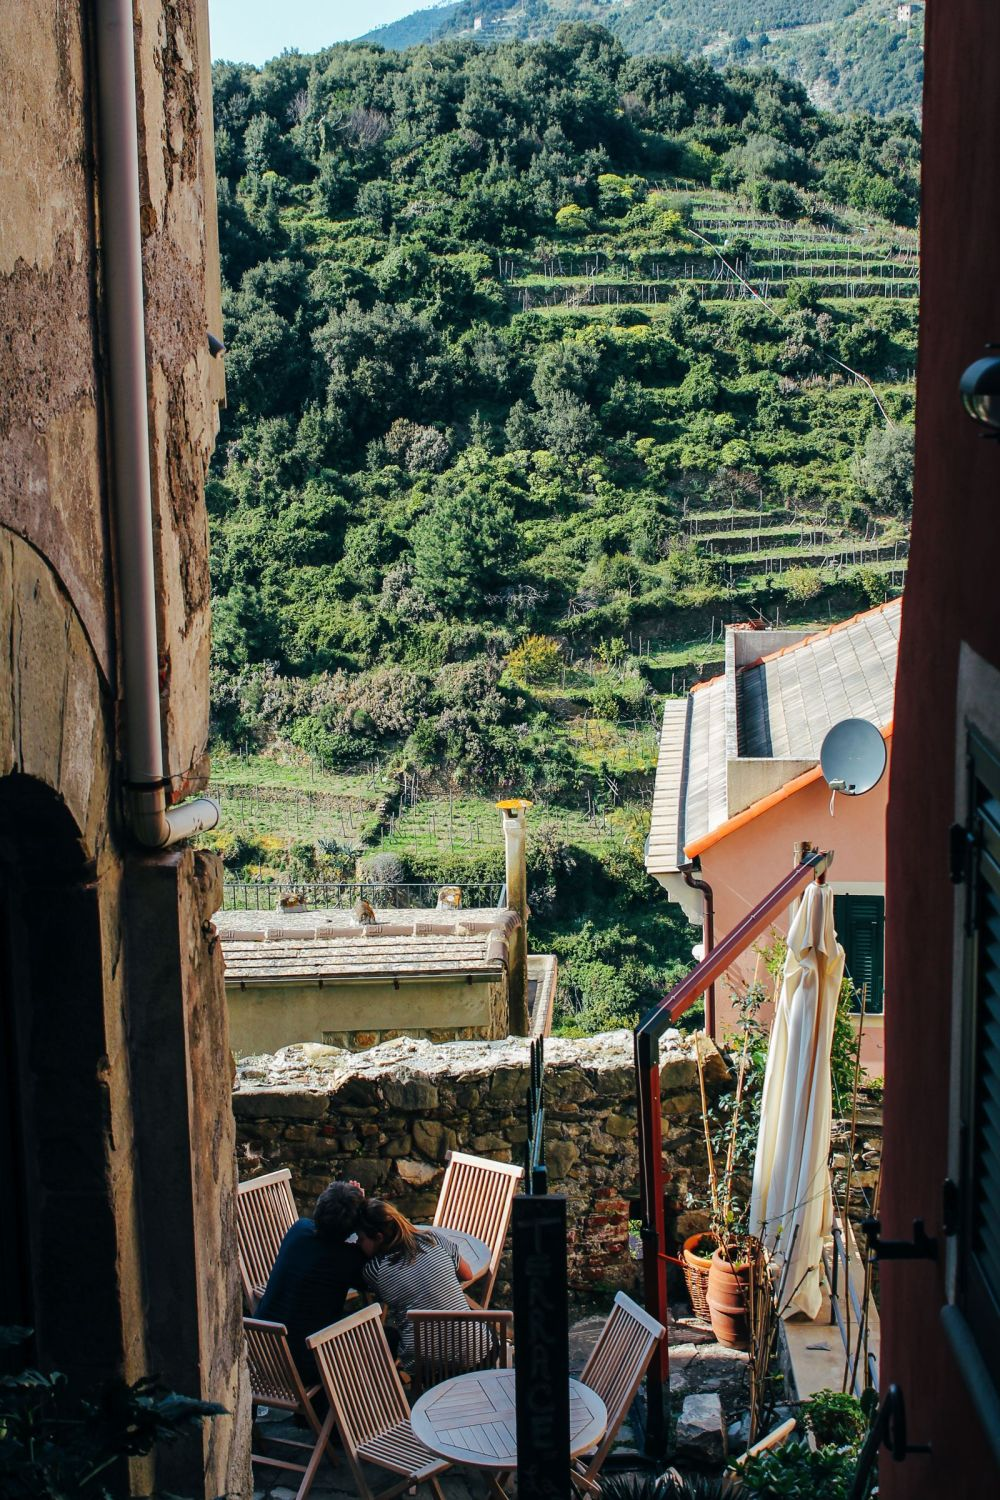 Corniglia in Cinque Terre, Italy - The Photo Diary! [3 of 5] (1)